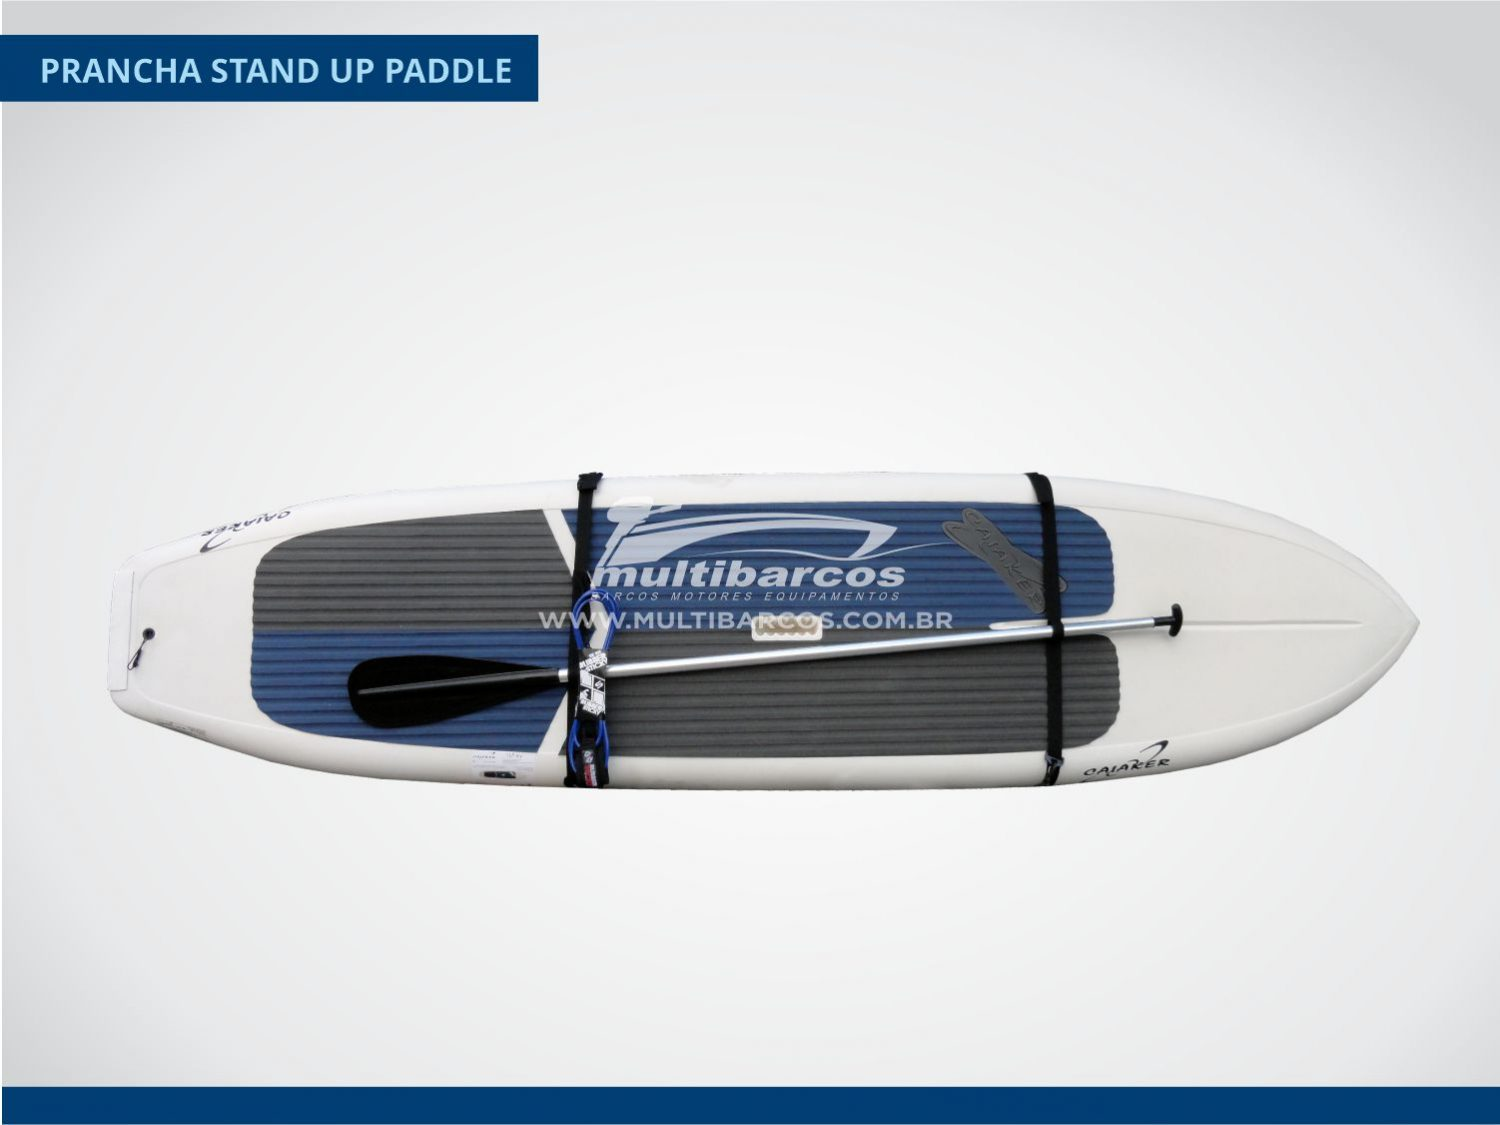 PRANCHA-STAND-UP-PADDLE